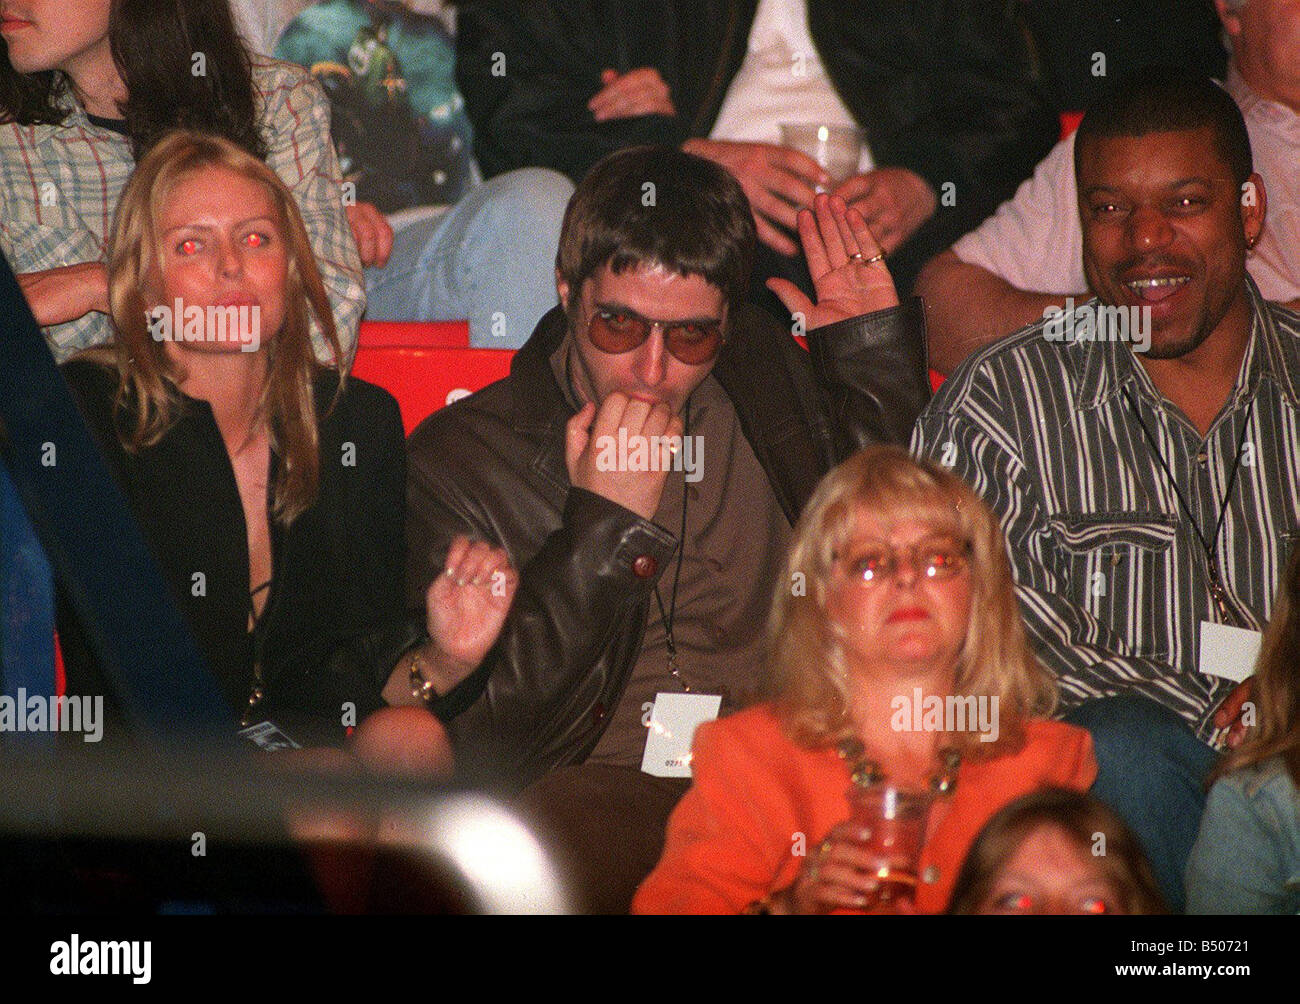 Liam Gallagher Of Oasis And His Wife Patsy Kensit At The Who Concert 1997 Wembley Arena